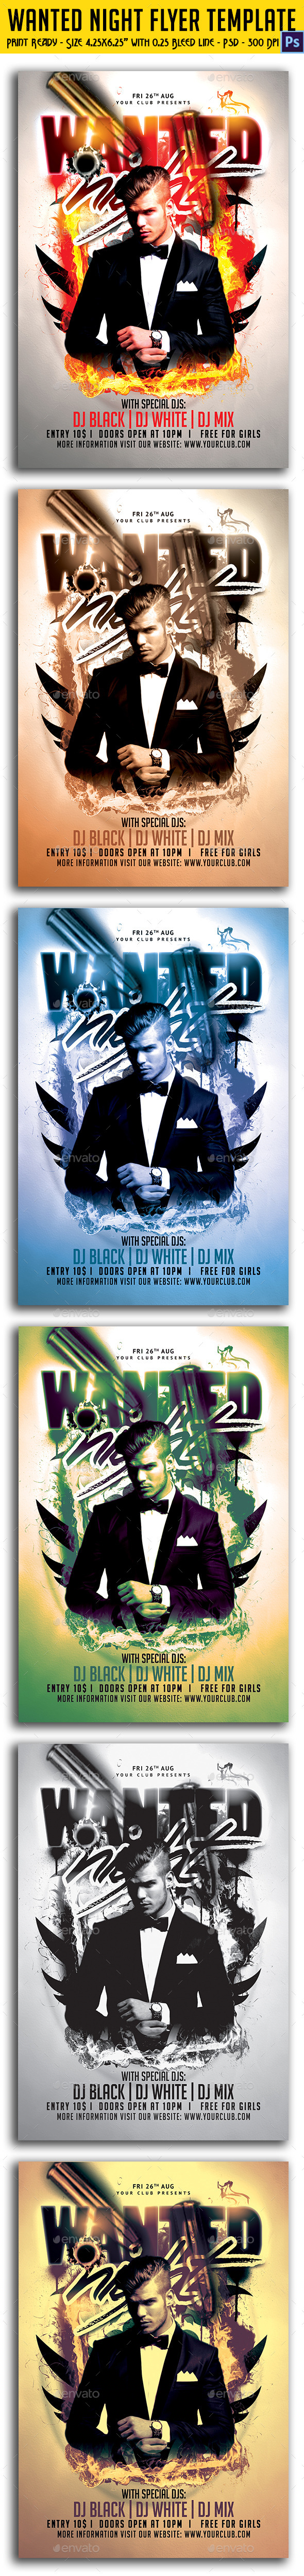 Wanted Night Party Flyer Template - Clubs & Parties Events